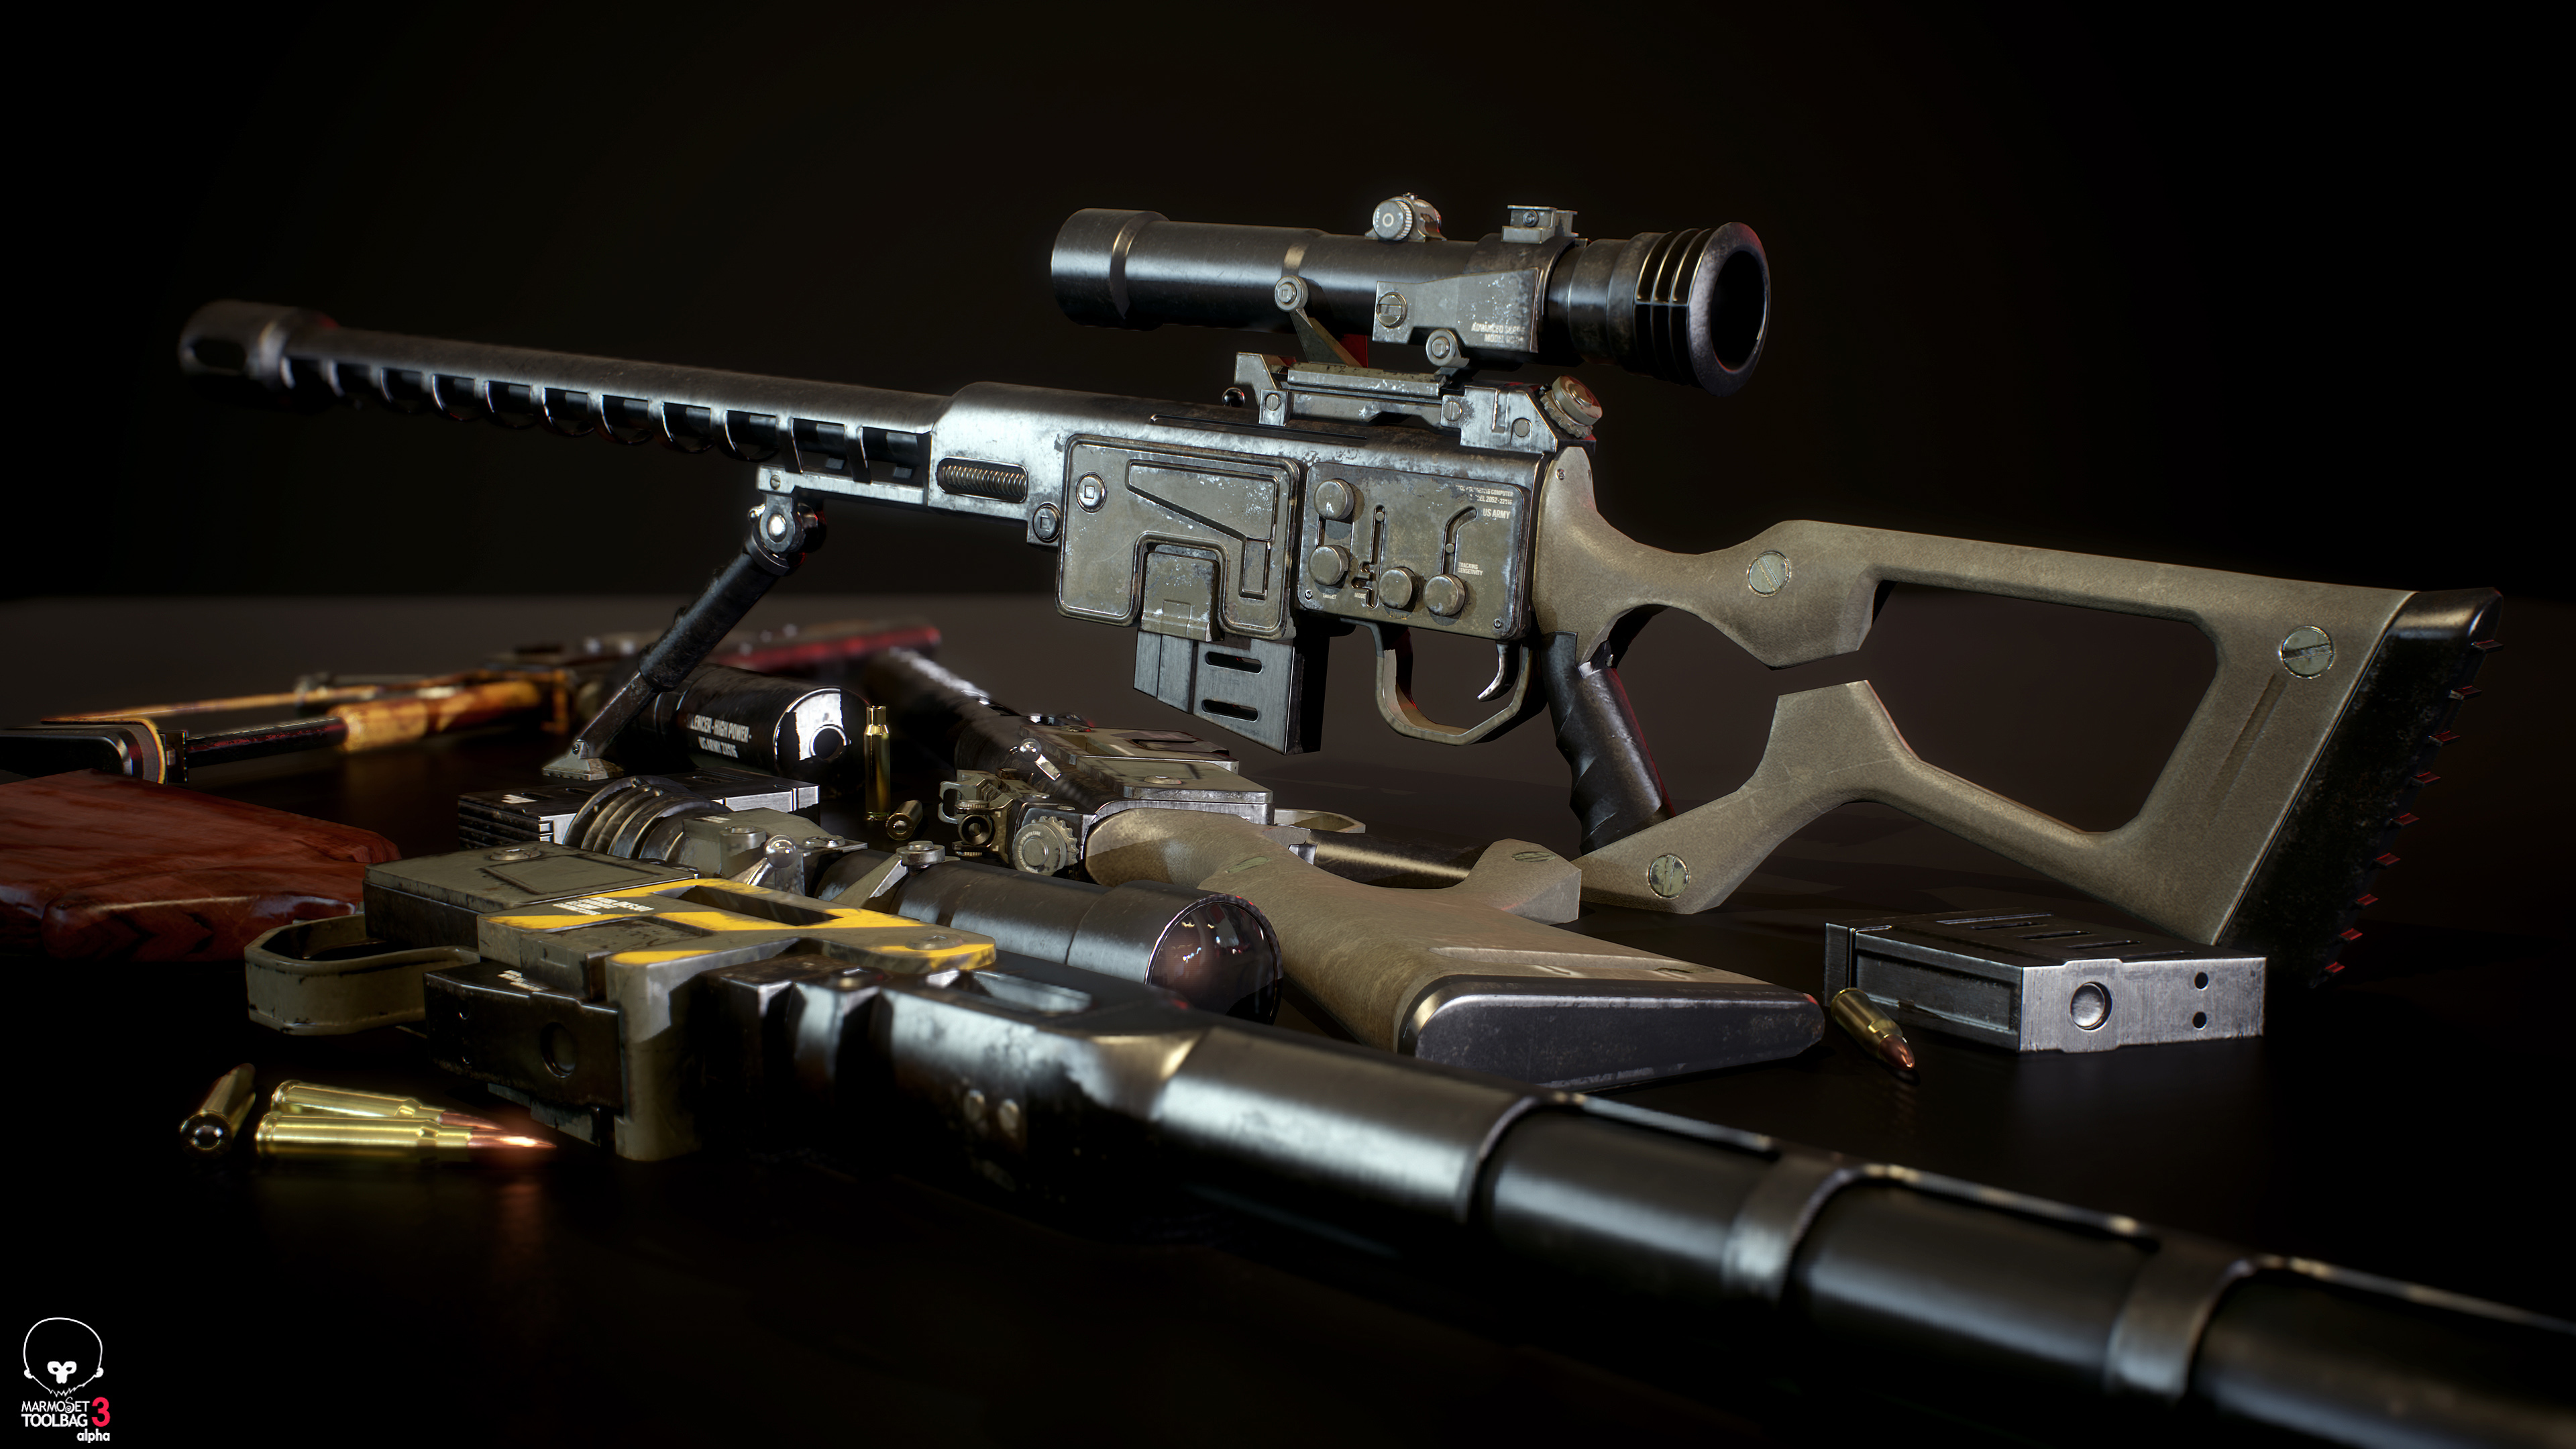 DKS-501 Sniper Rifle